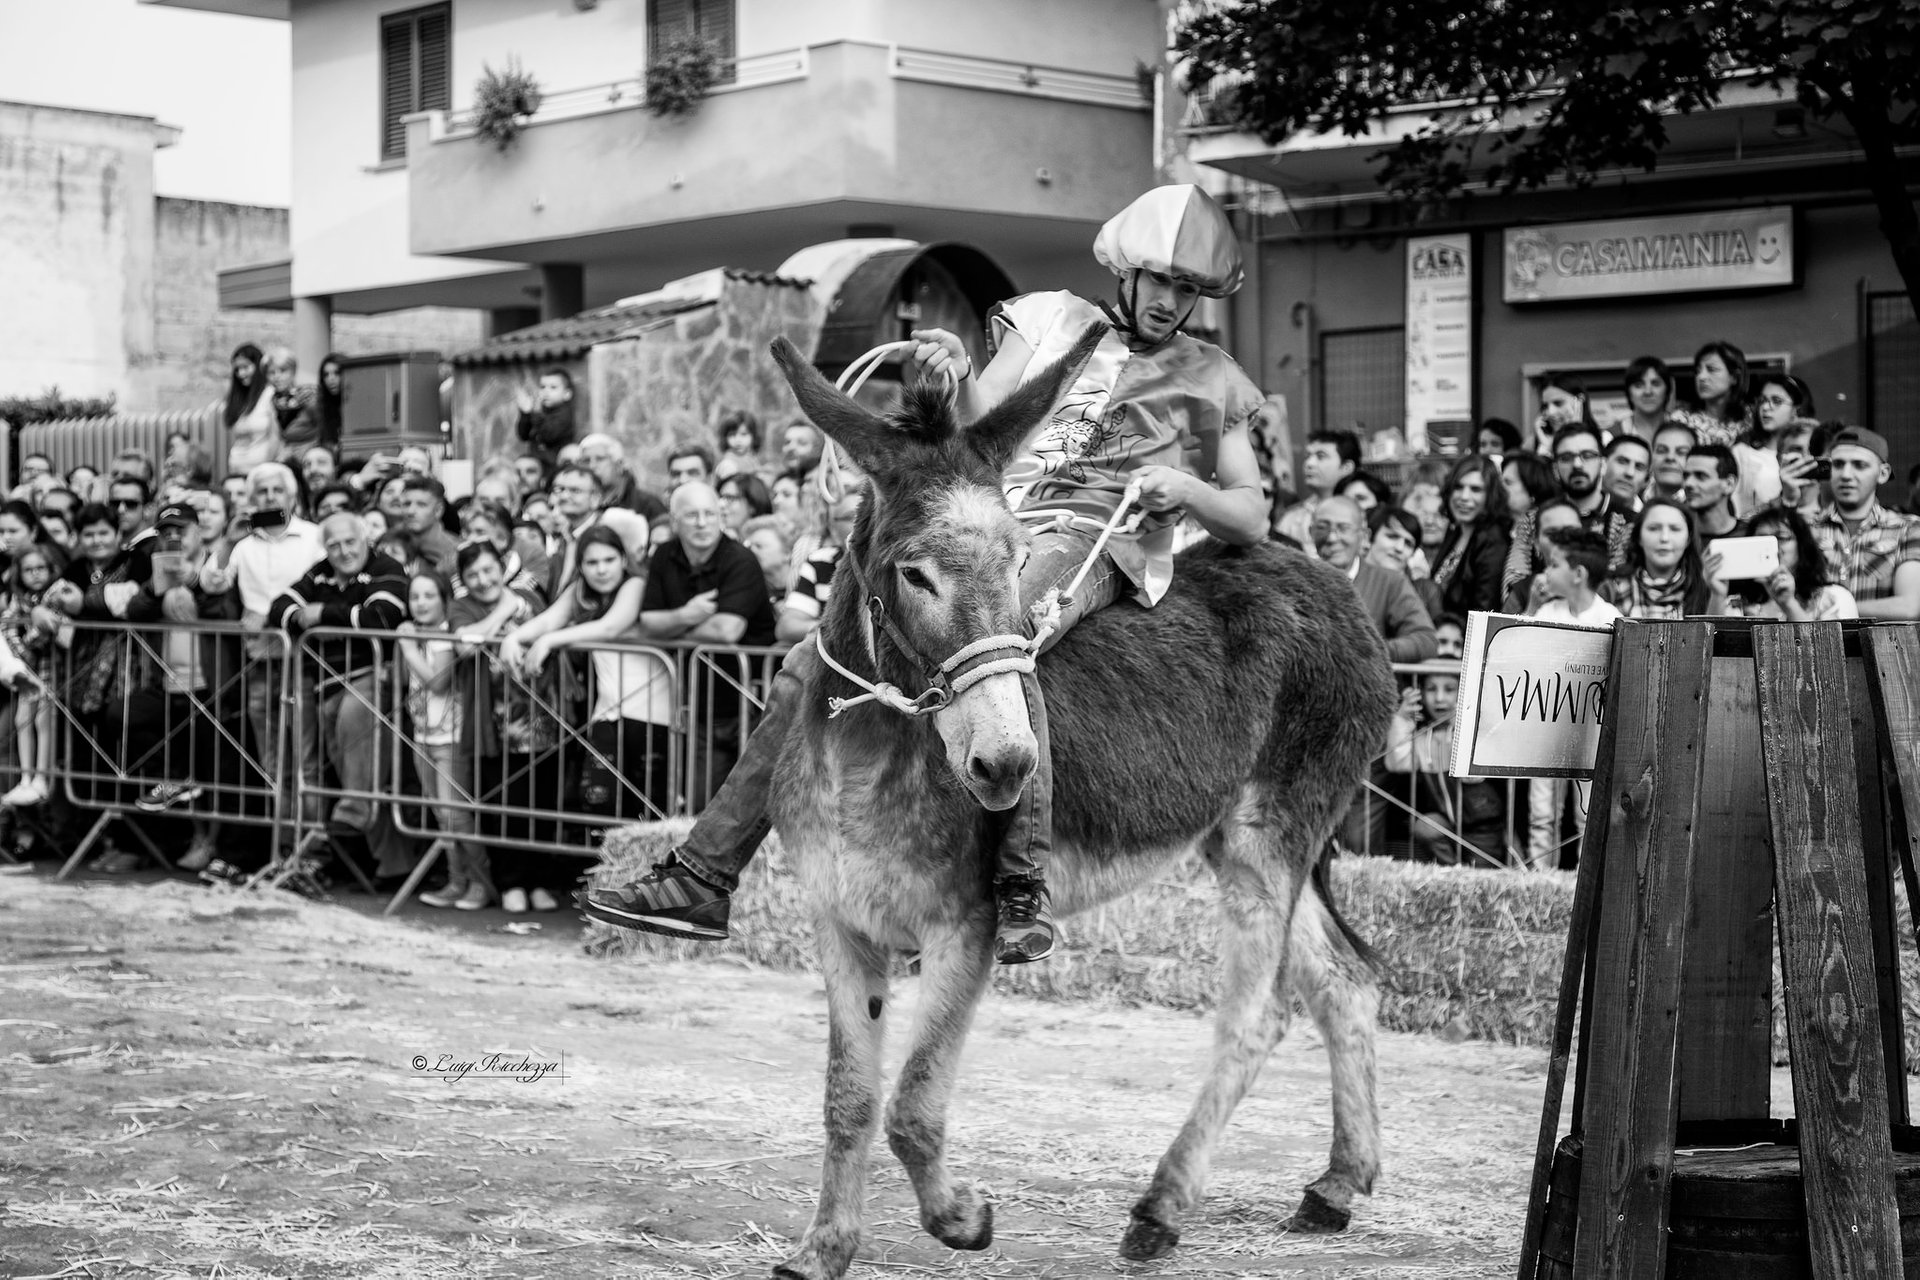 Palio del Casale in Naples and Pompeii - Best Season 2019